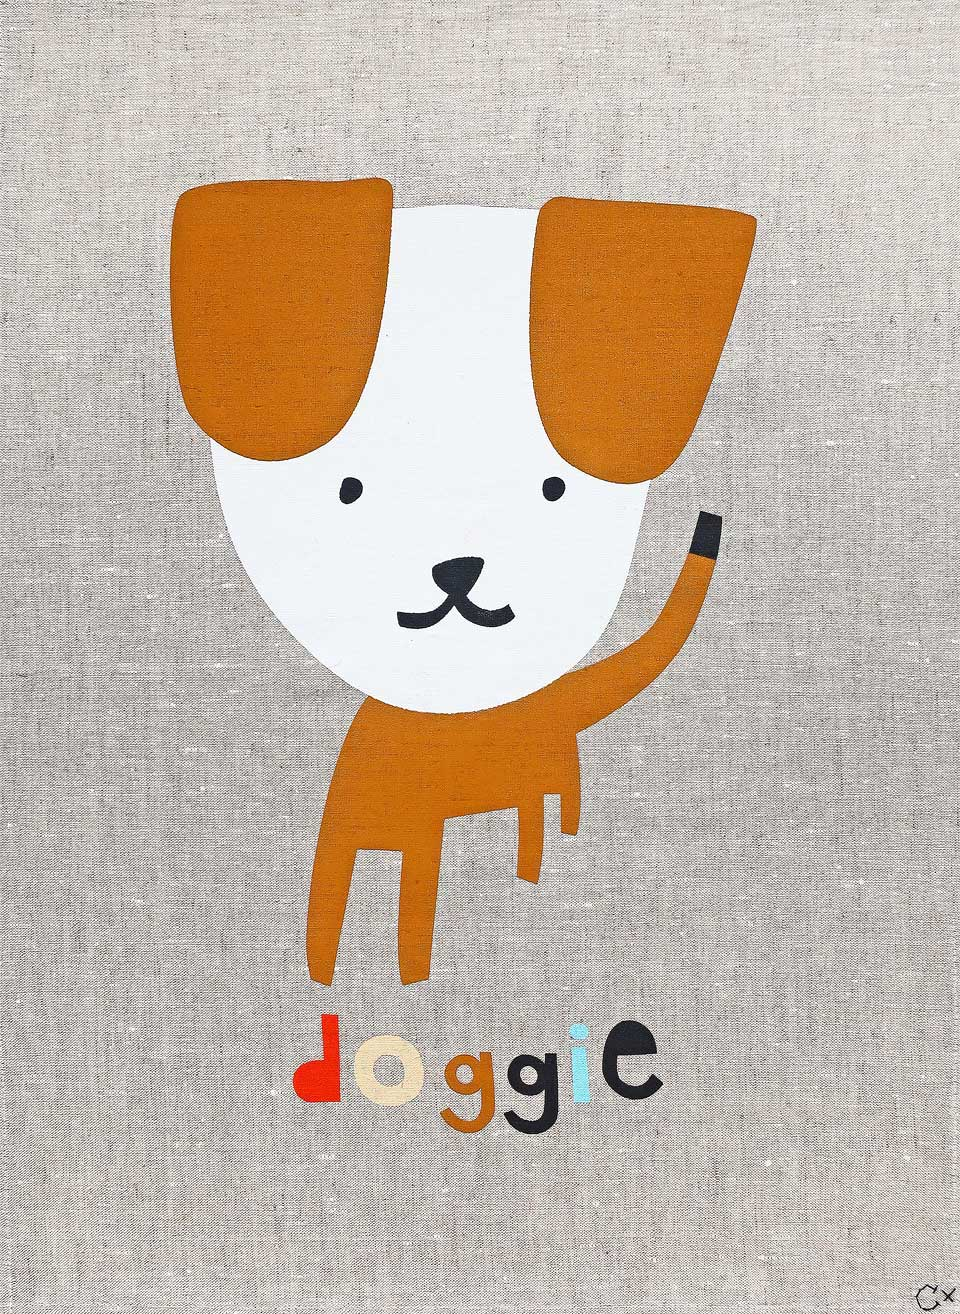 Art Teatowel - Doggie with professional orange frame - Mandi at Home